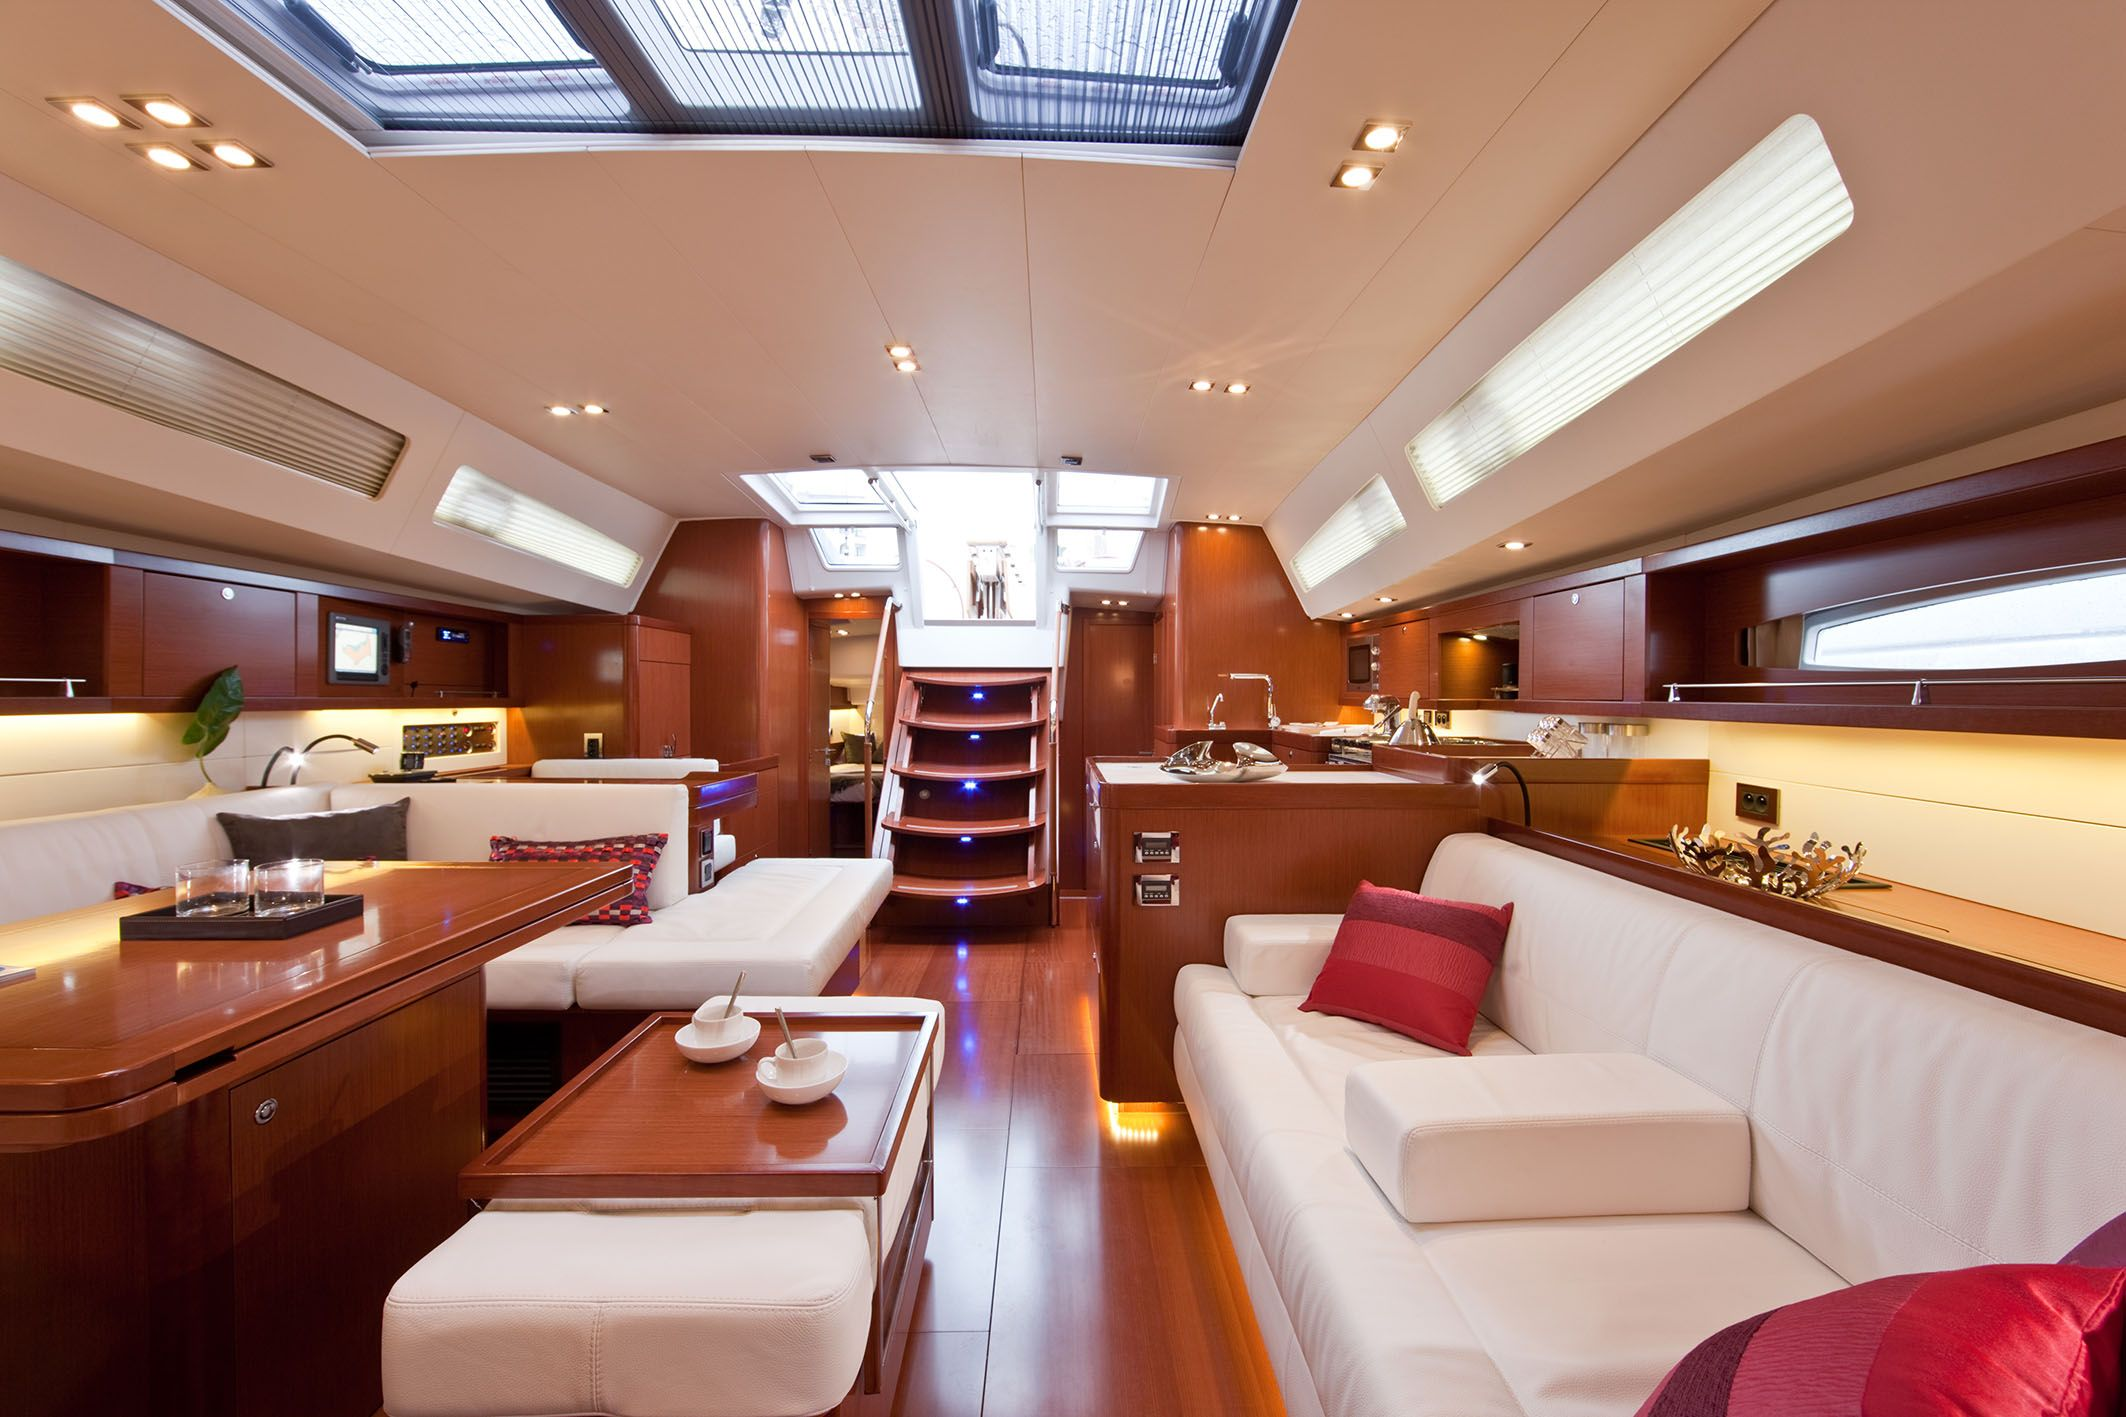 beneteau oceanis 58 interior in other words how i travel holla beneteau oceanis 58 interior in other words how i travel holla